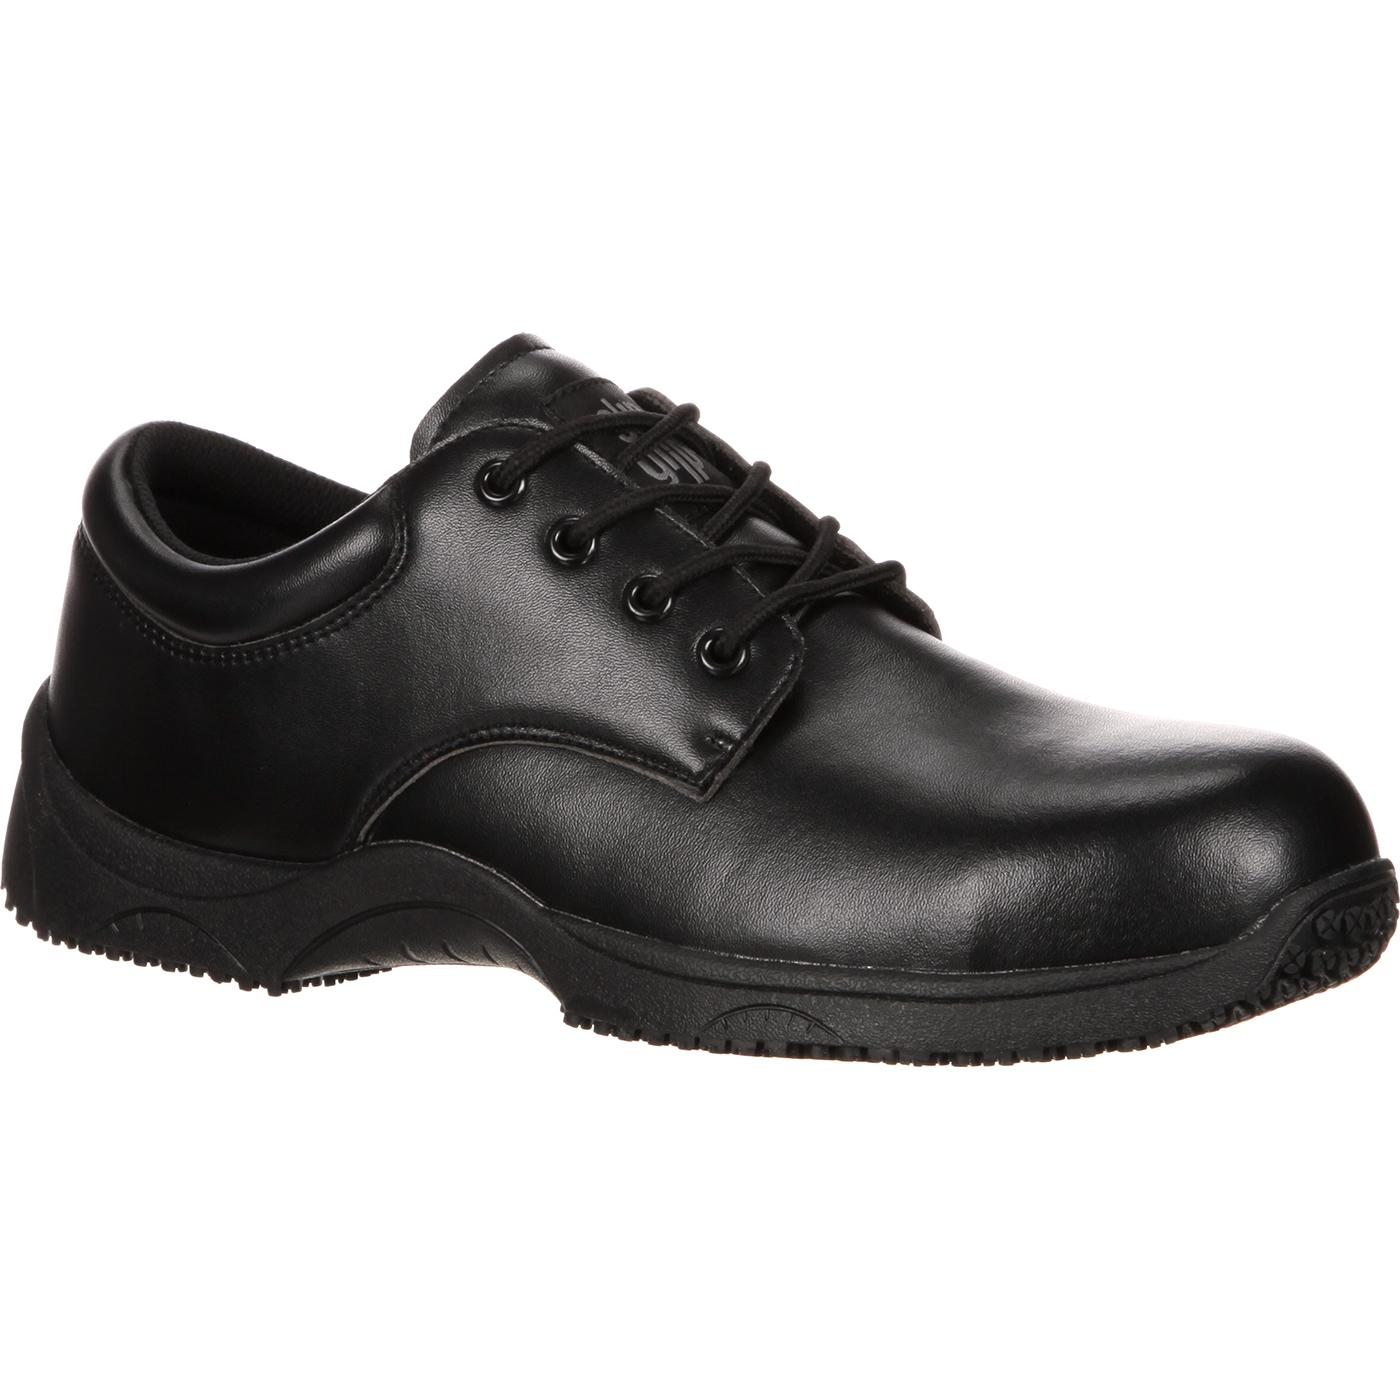 SlipGrips Composite Toe Slip-Resistant Oxford